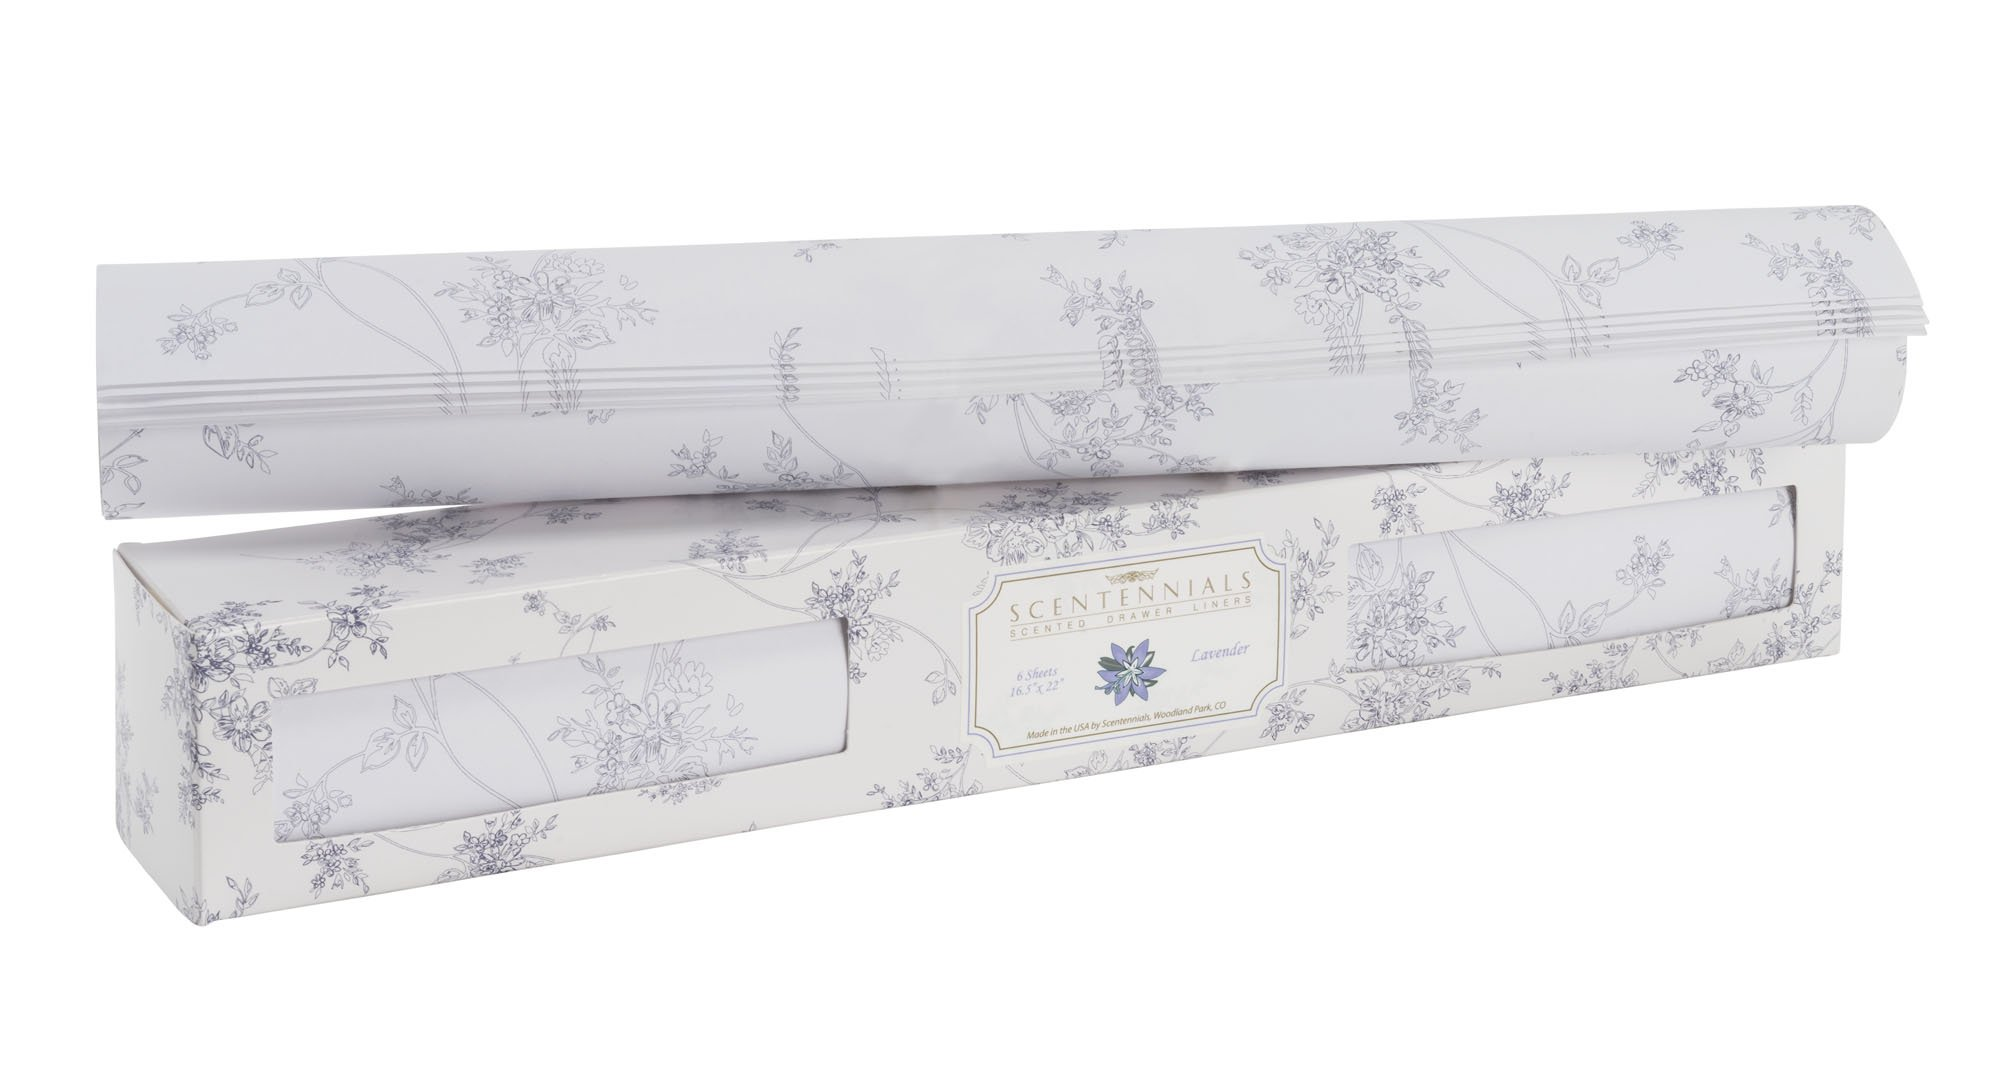 Scentennials Lavender (18 Sheets) Scented Drawer Liners by Scentennials Scented Drawer Liners